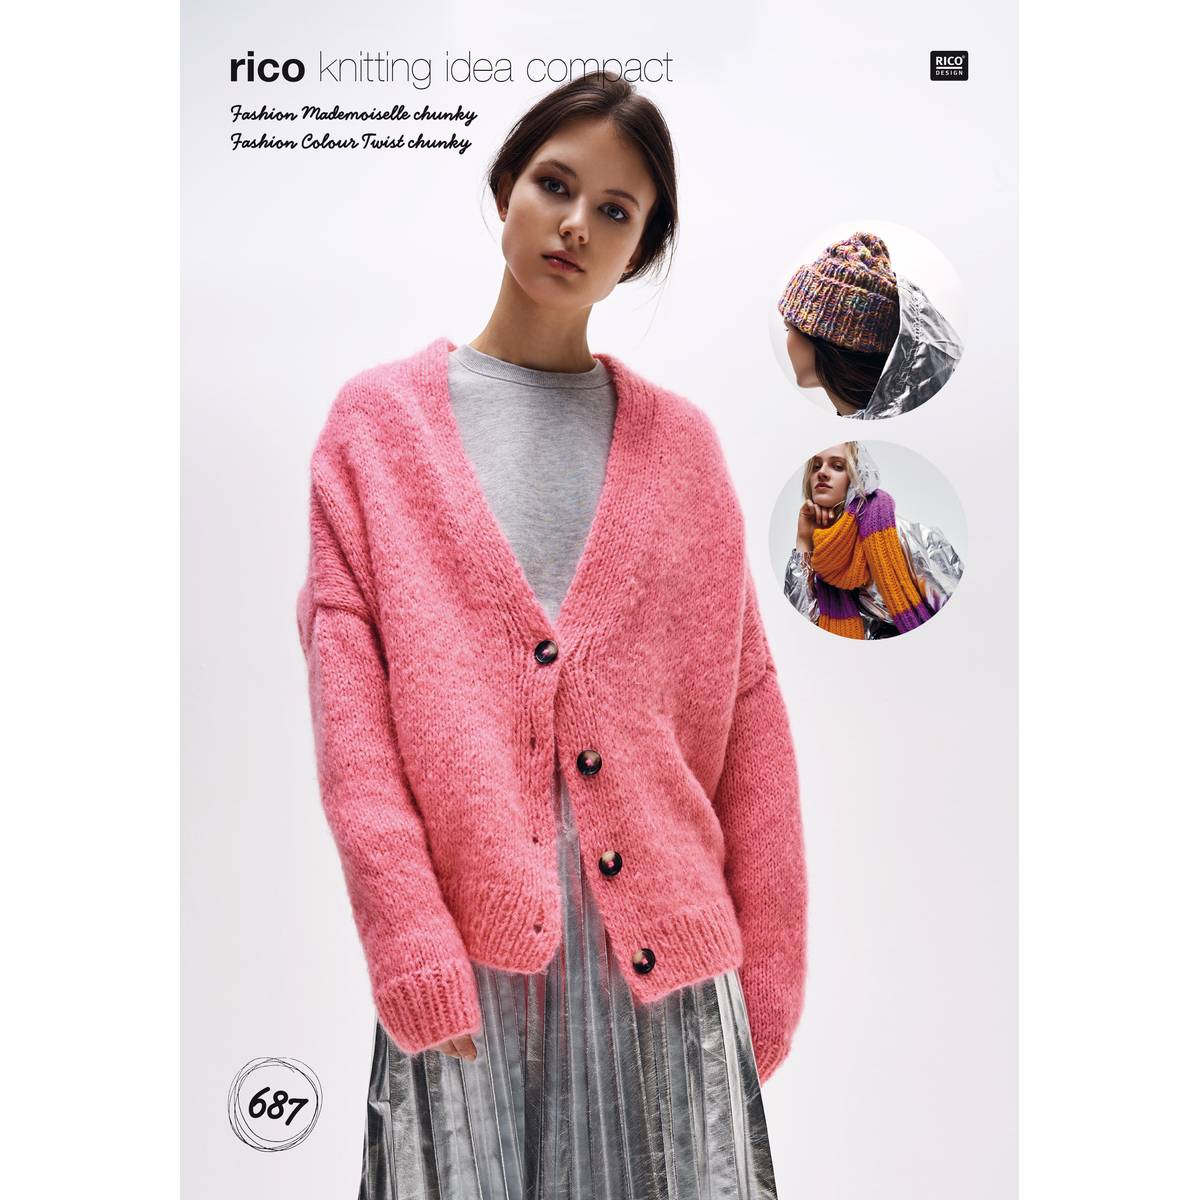 Fashionable Knitting Patterns Uk Rico Madamoiselle Chunky Cardigan And Accessories Pattern 687